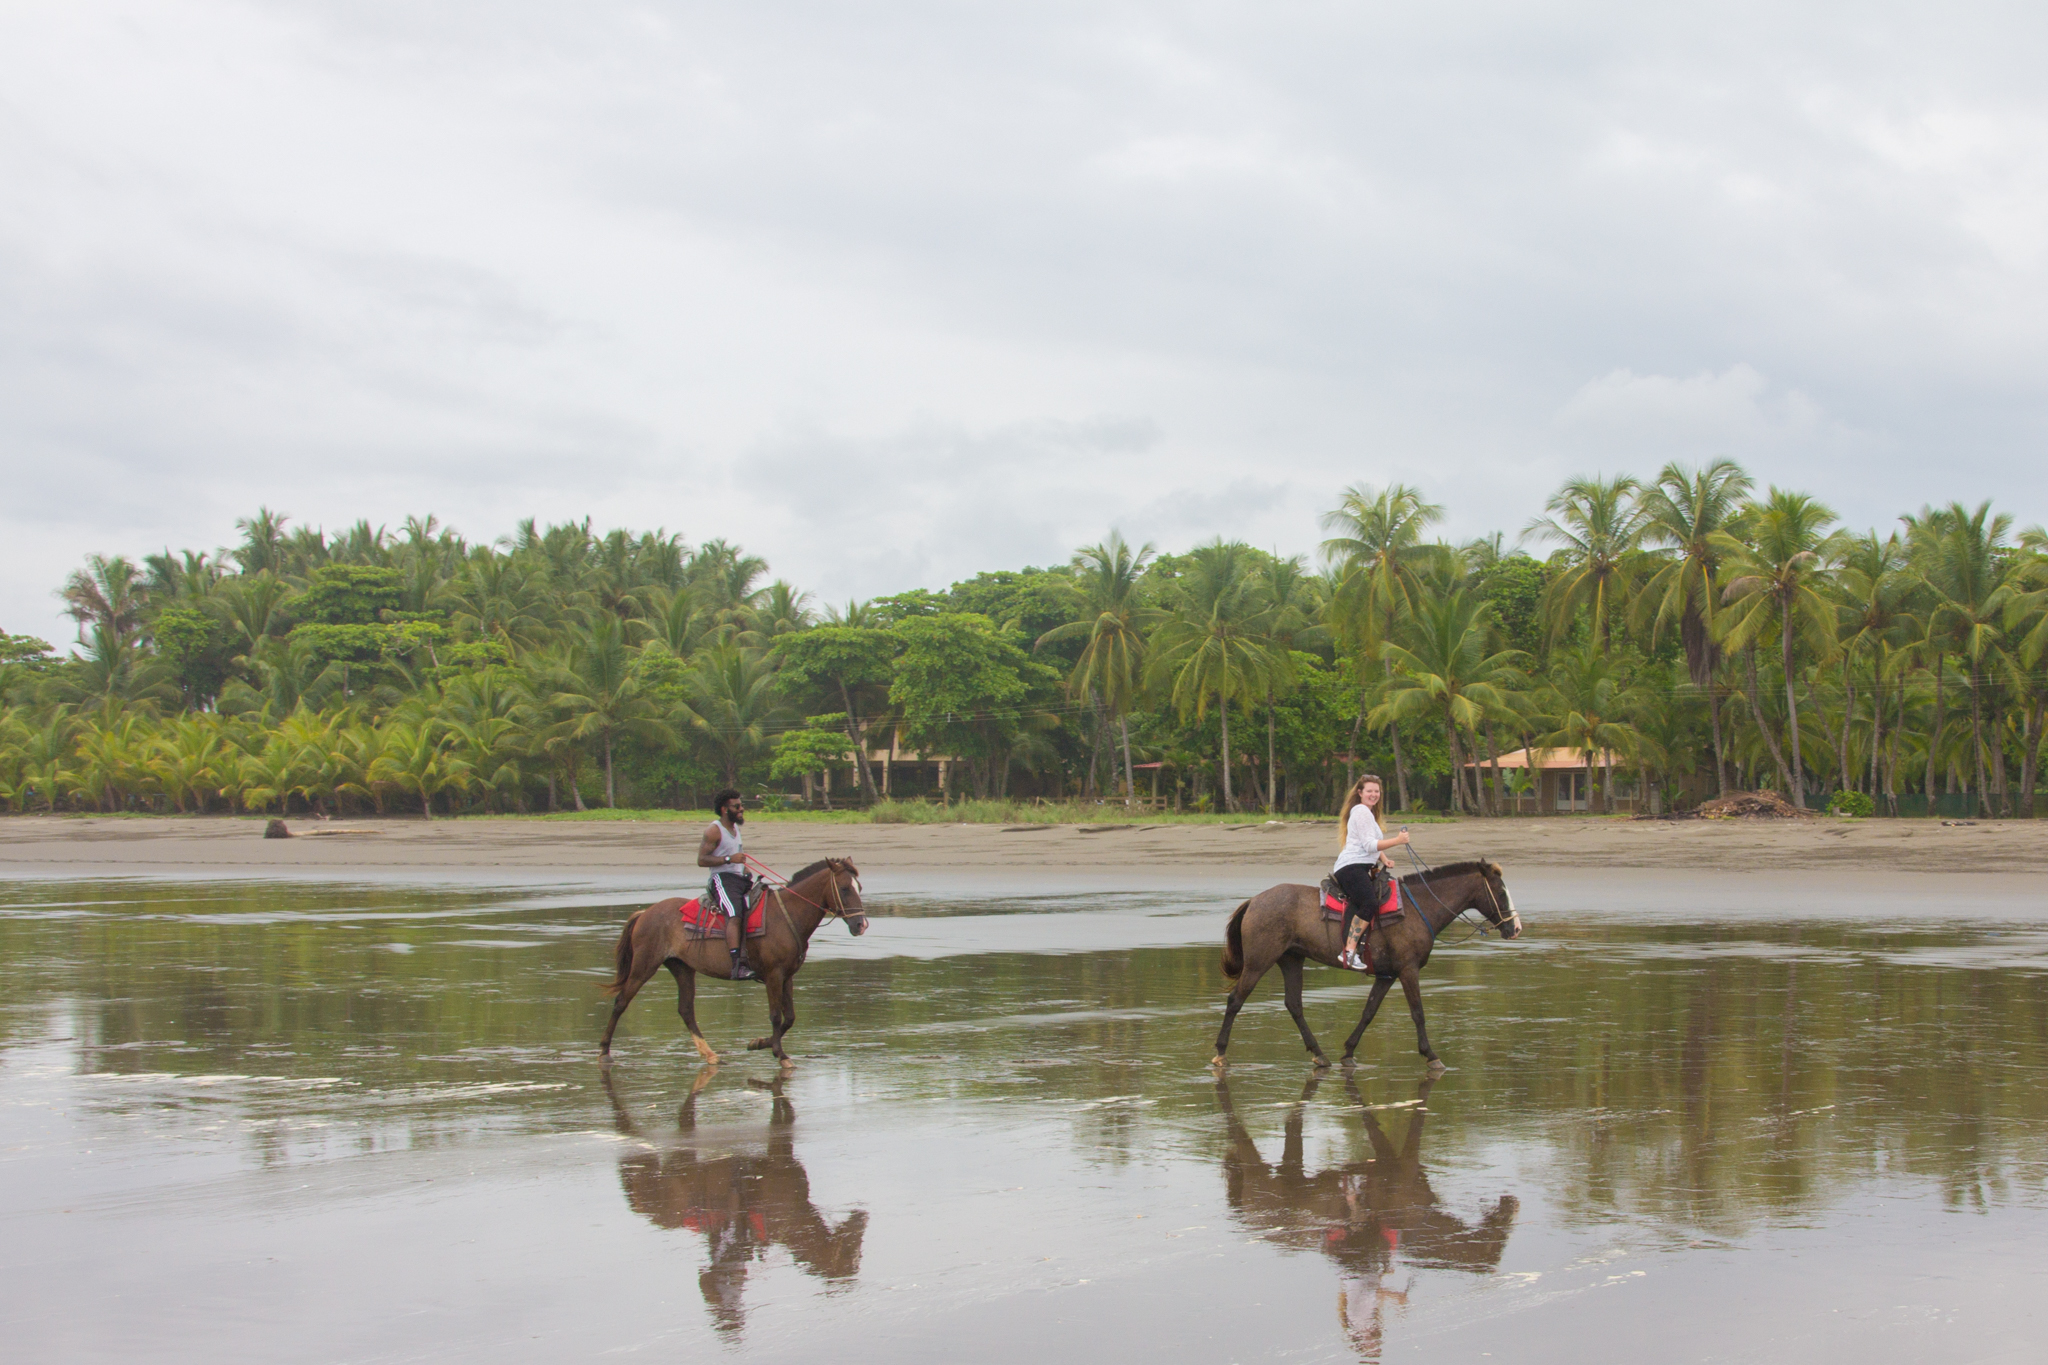 Horseback riding can be a bit pricey but there are ways to make it cheaper: Groupon, student cards, and coupon clipping all come in handy.